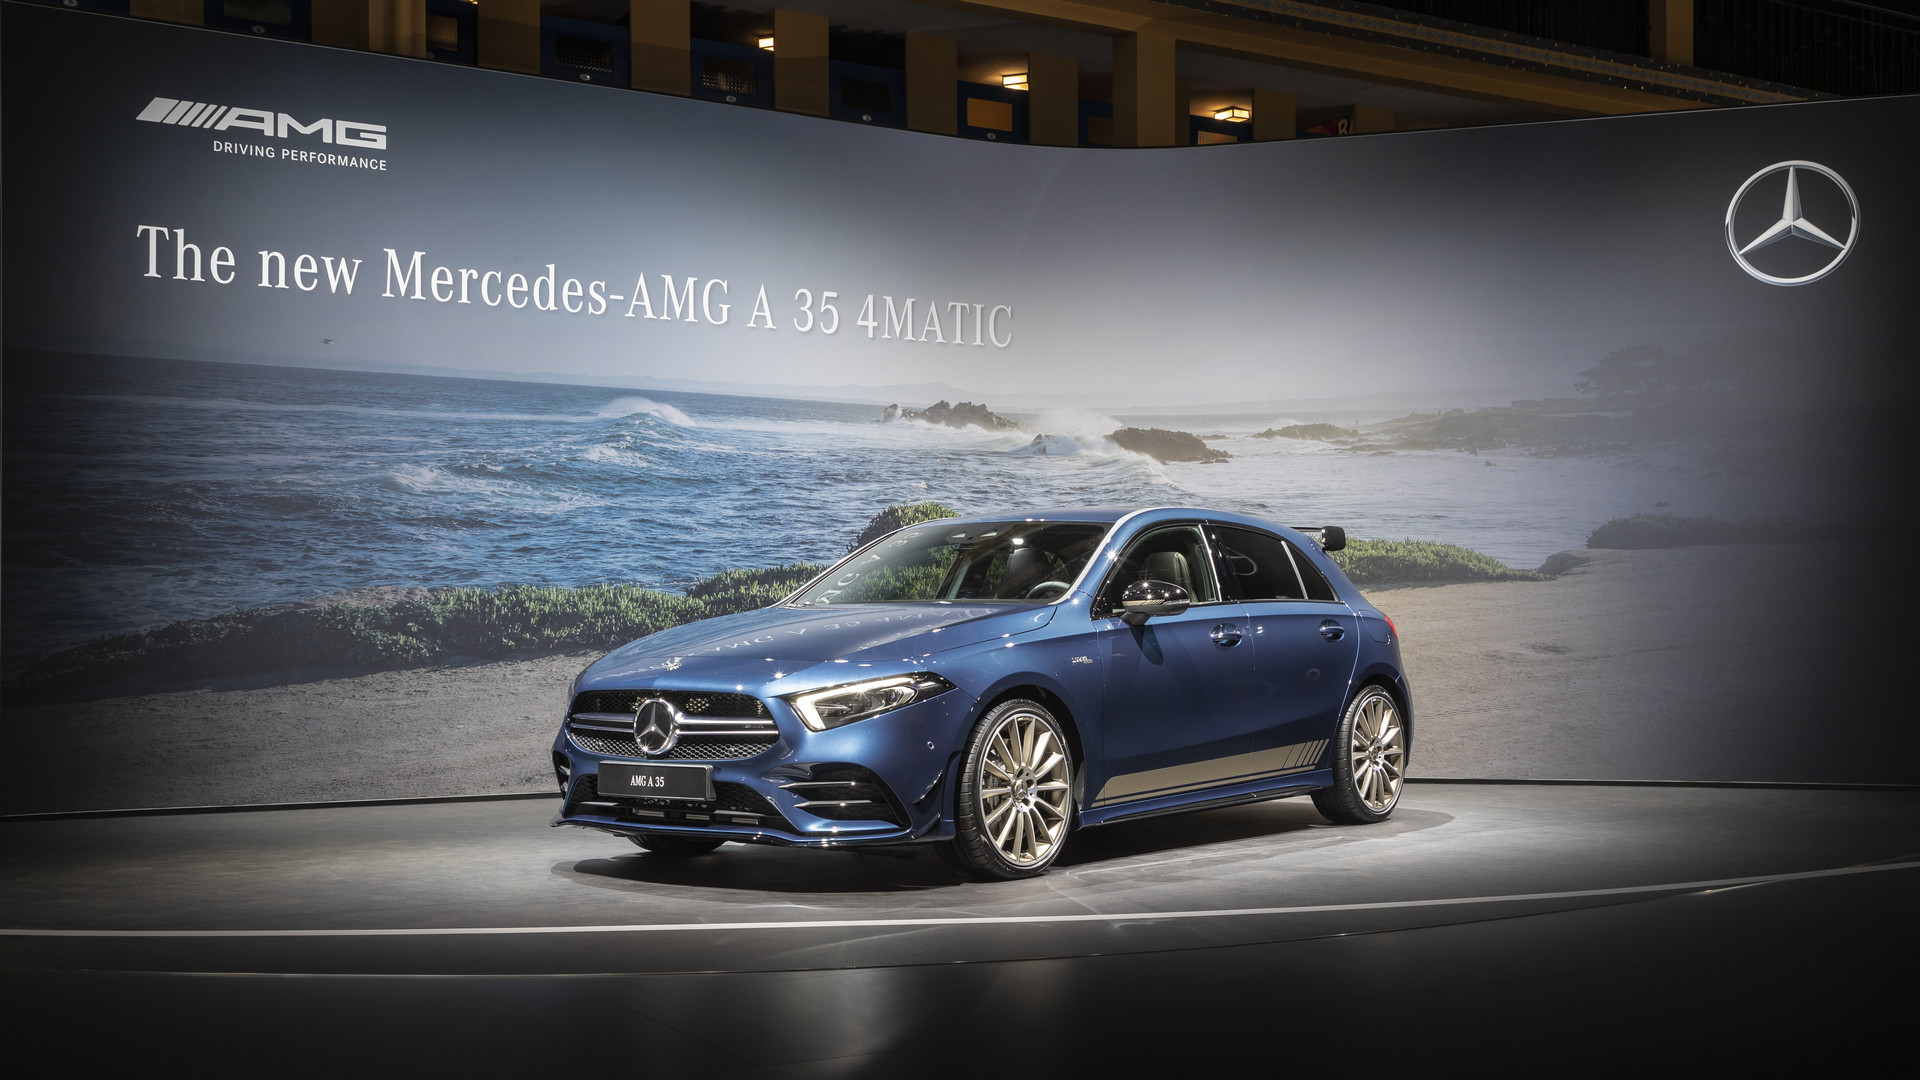 2019 Mercedes-AMG A35 Front View